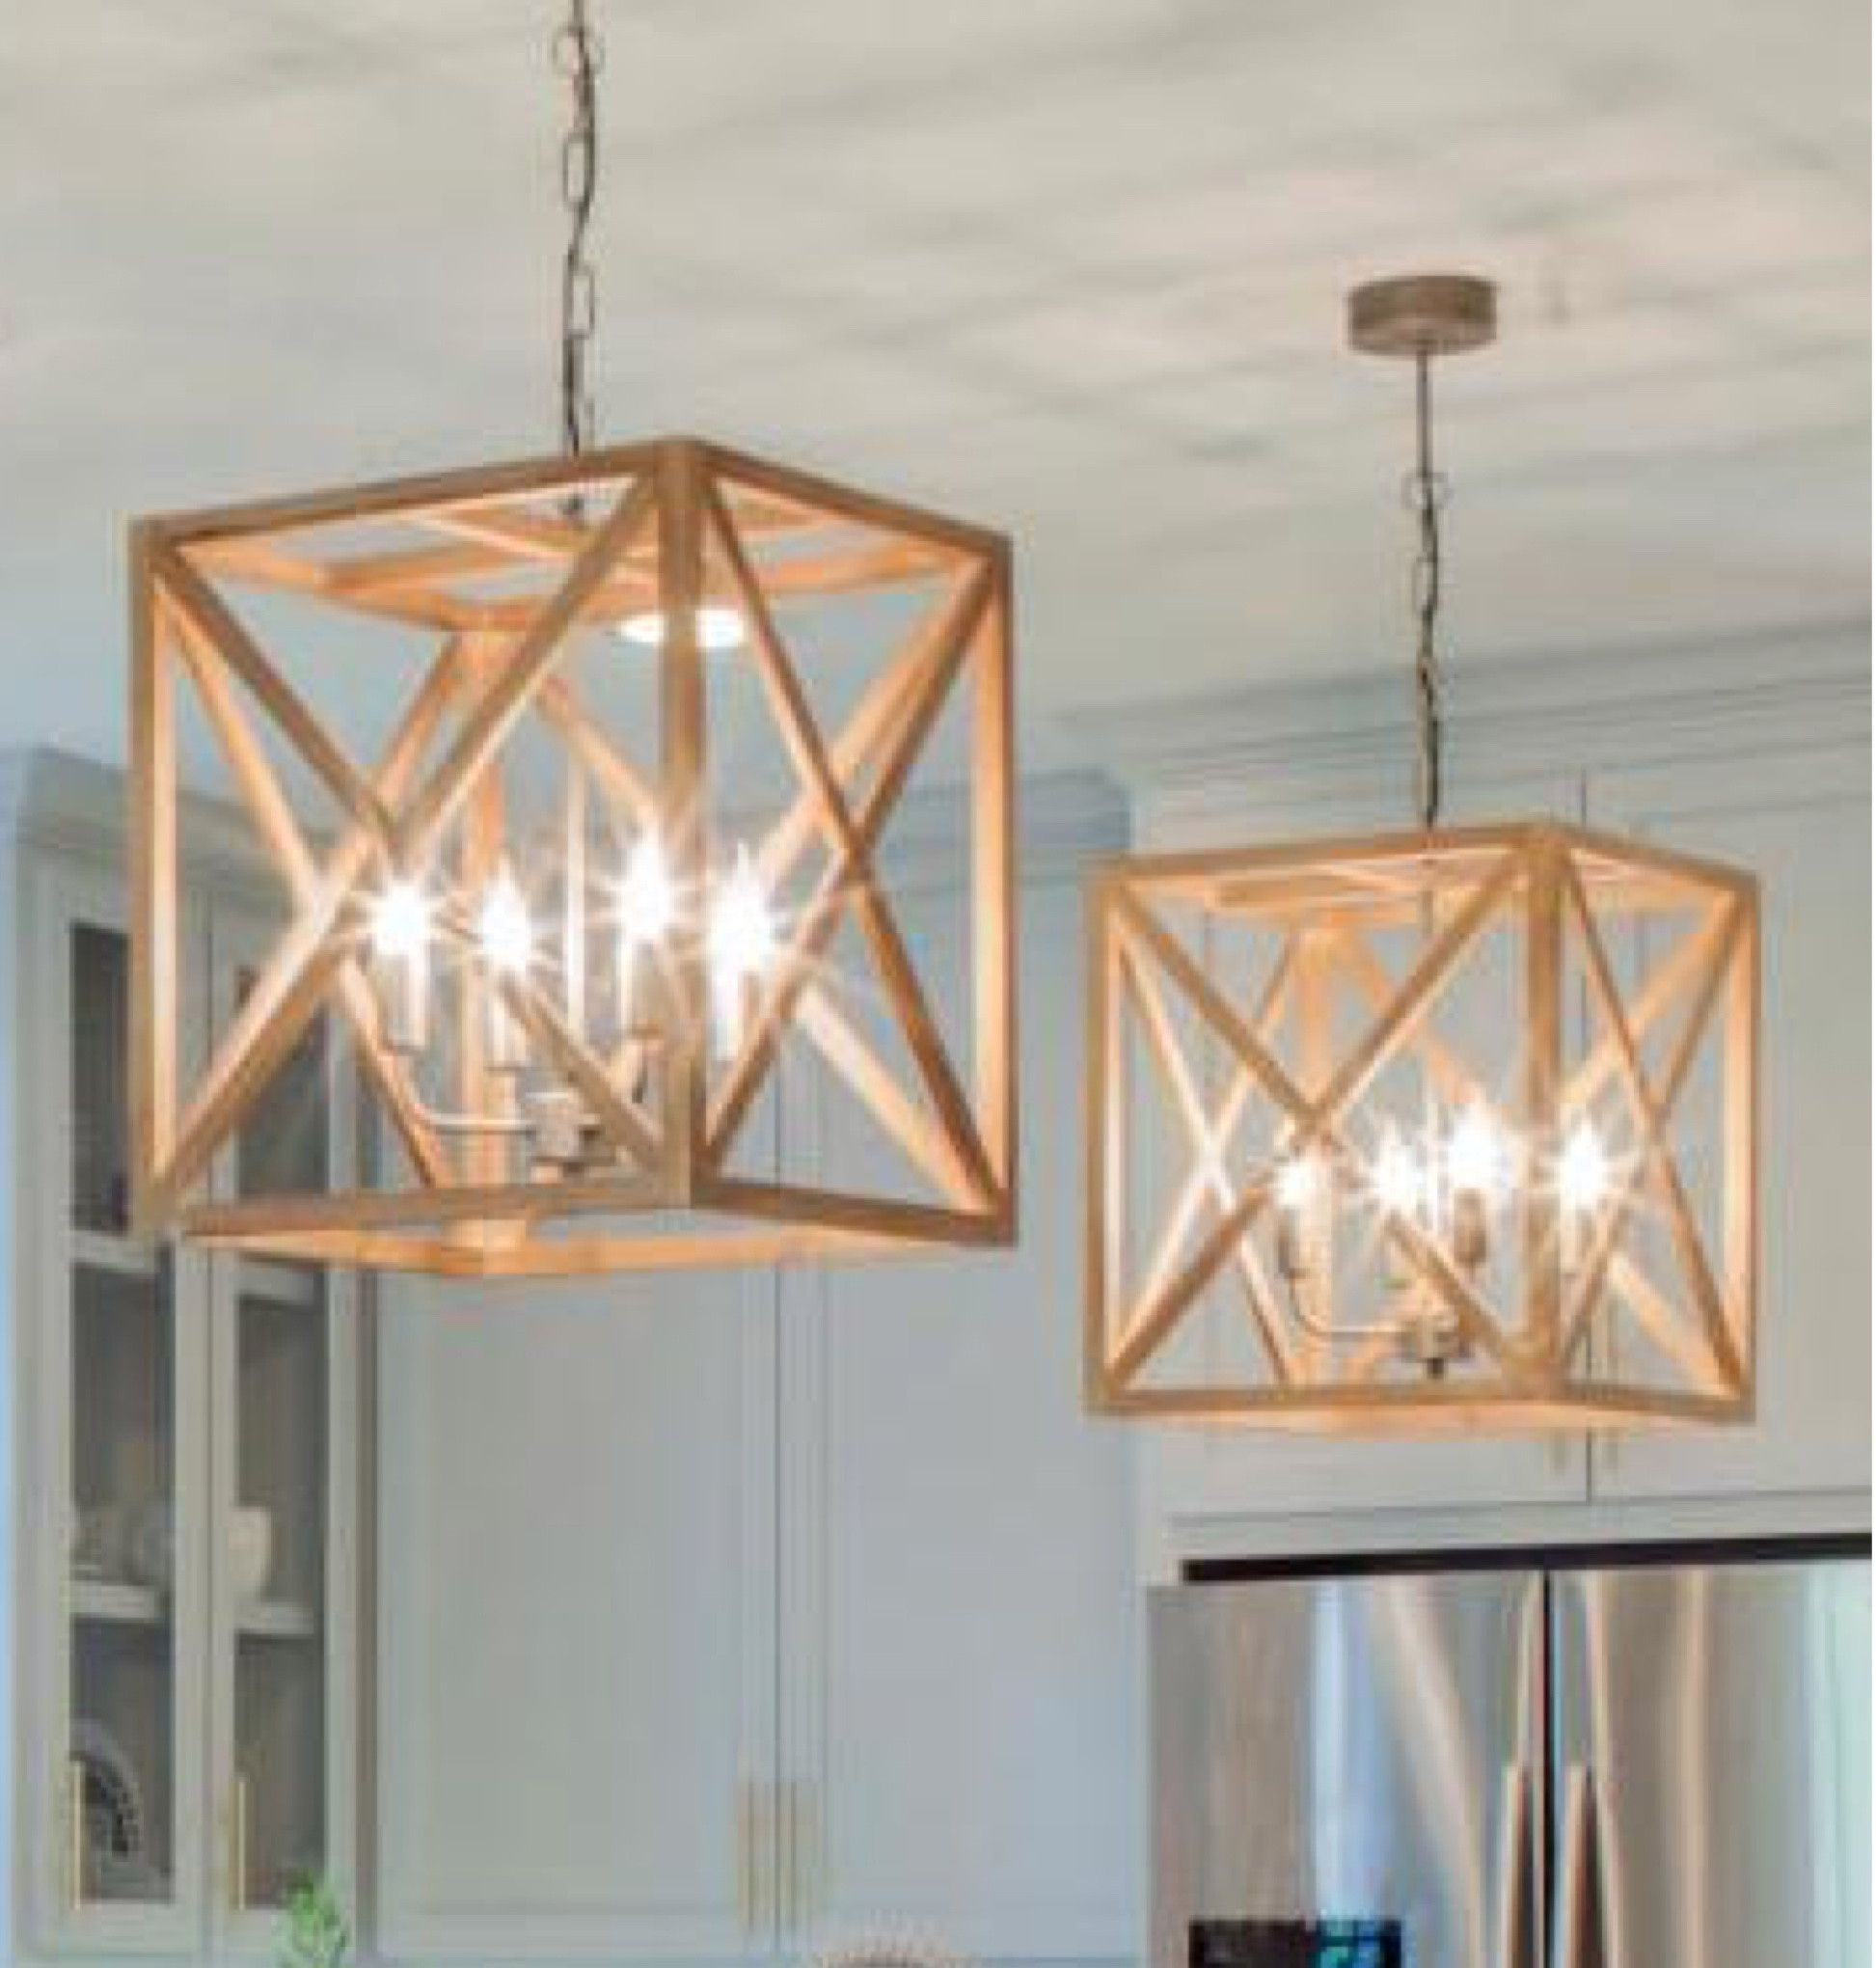 Wood Chandeliers For Dining Room: This Square Wood And Metal Chandelier Will Add A